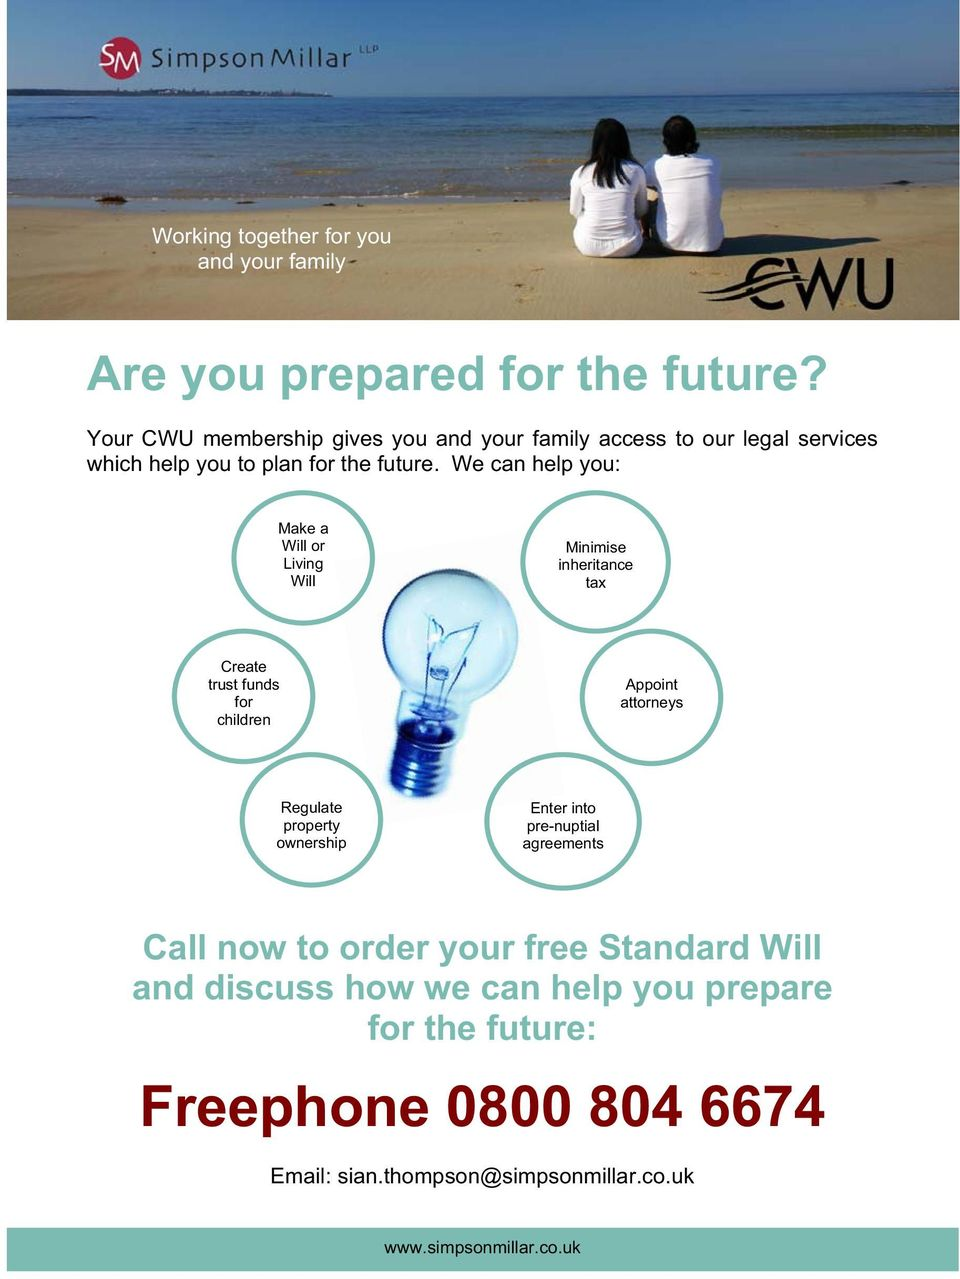 We can help you: Make a Will or Living Will Minimise inheritance tax Create trust funds for children Appoint attorneys